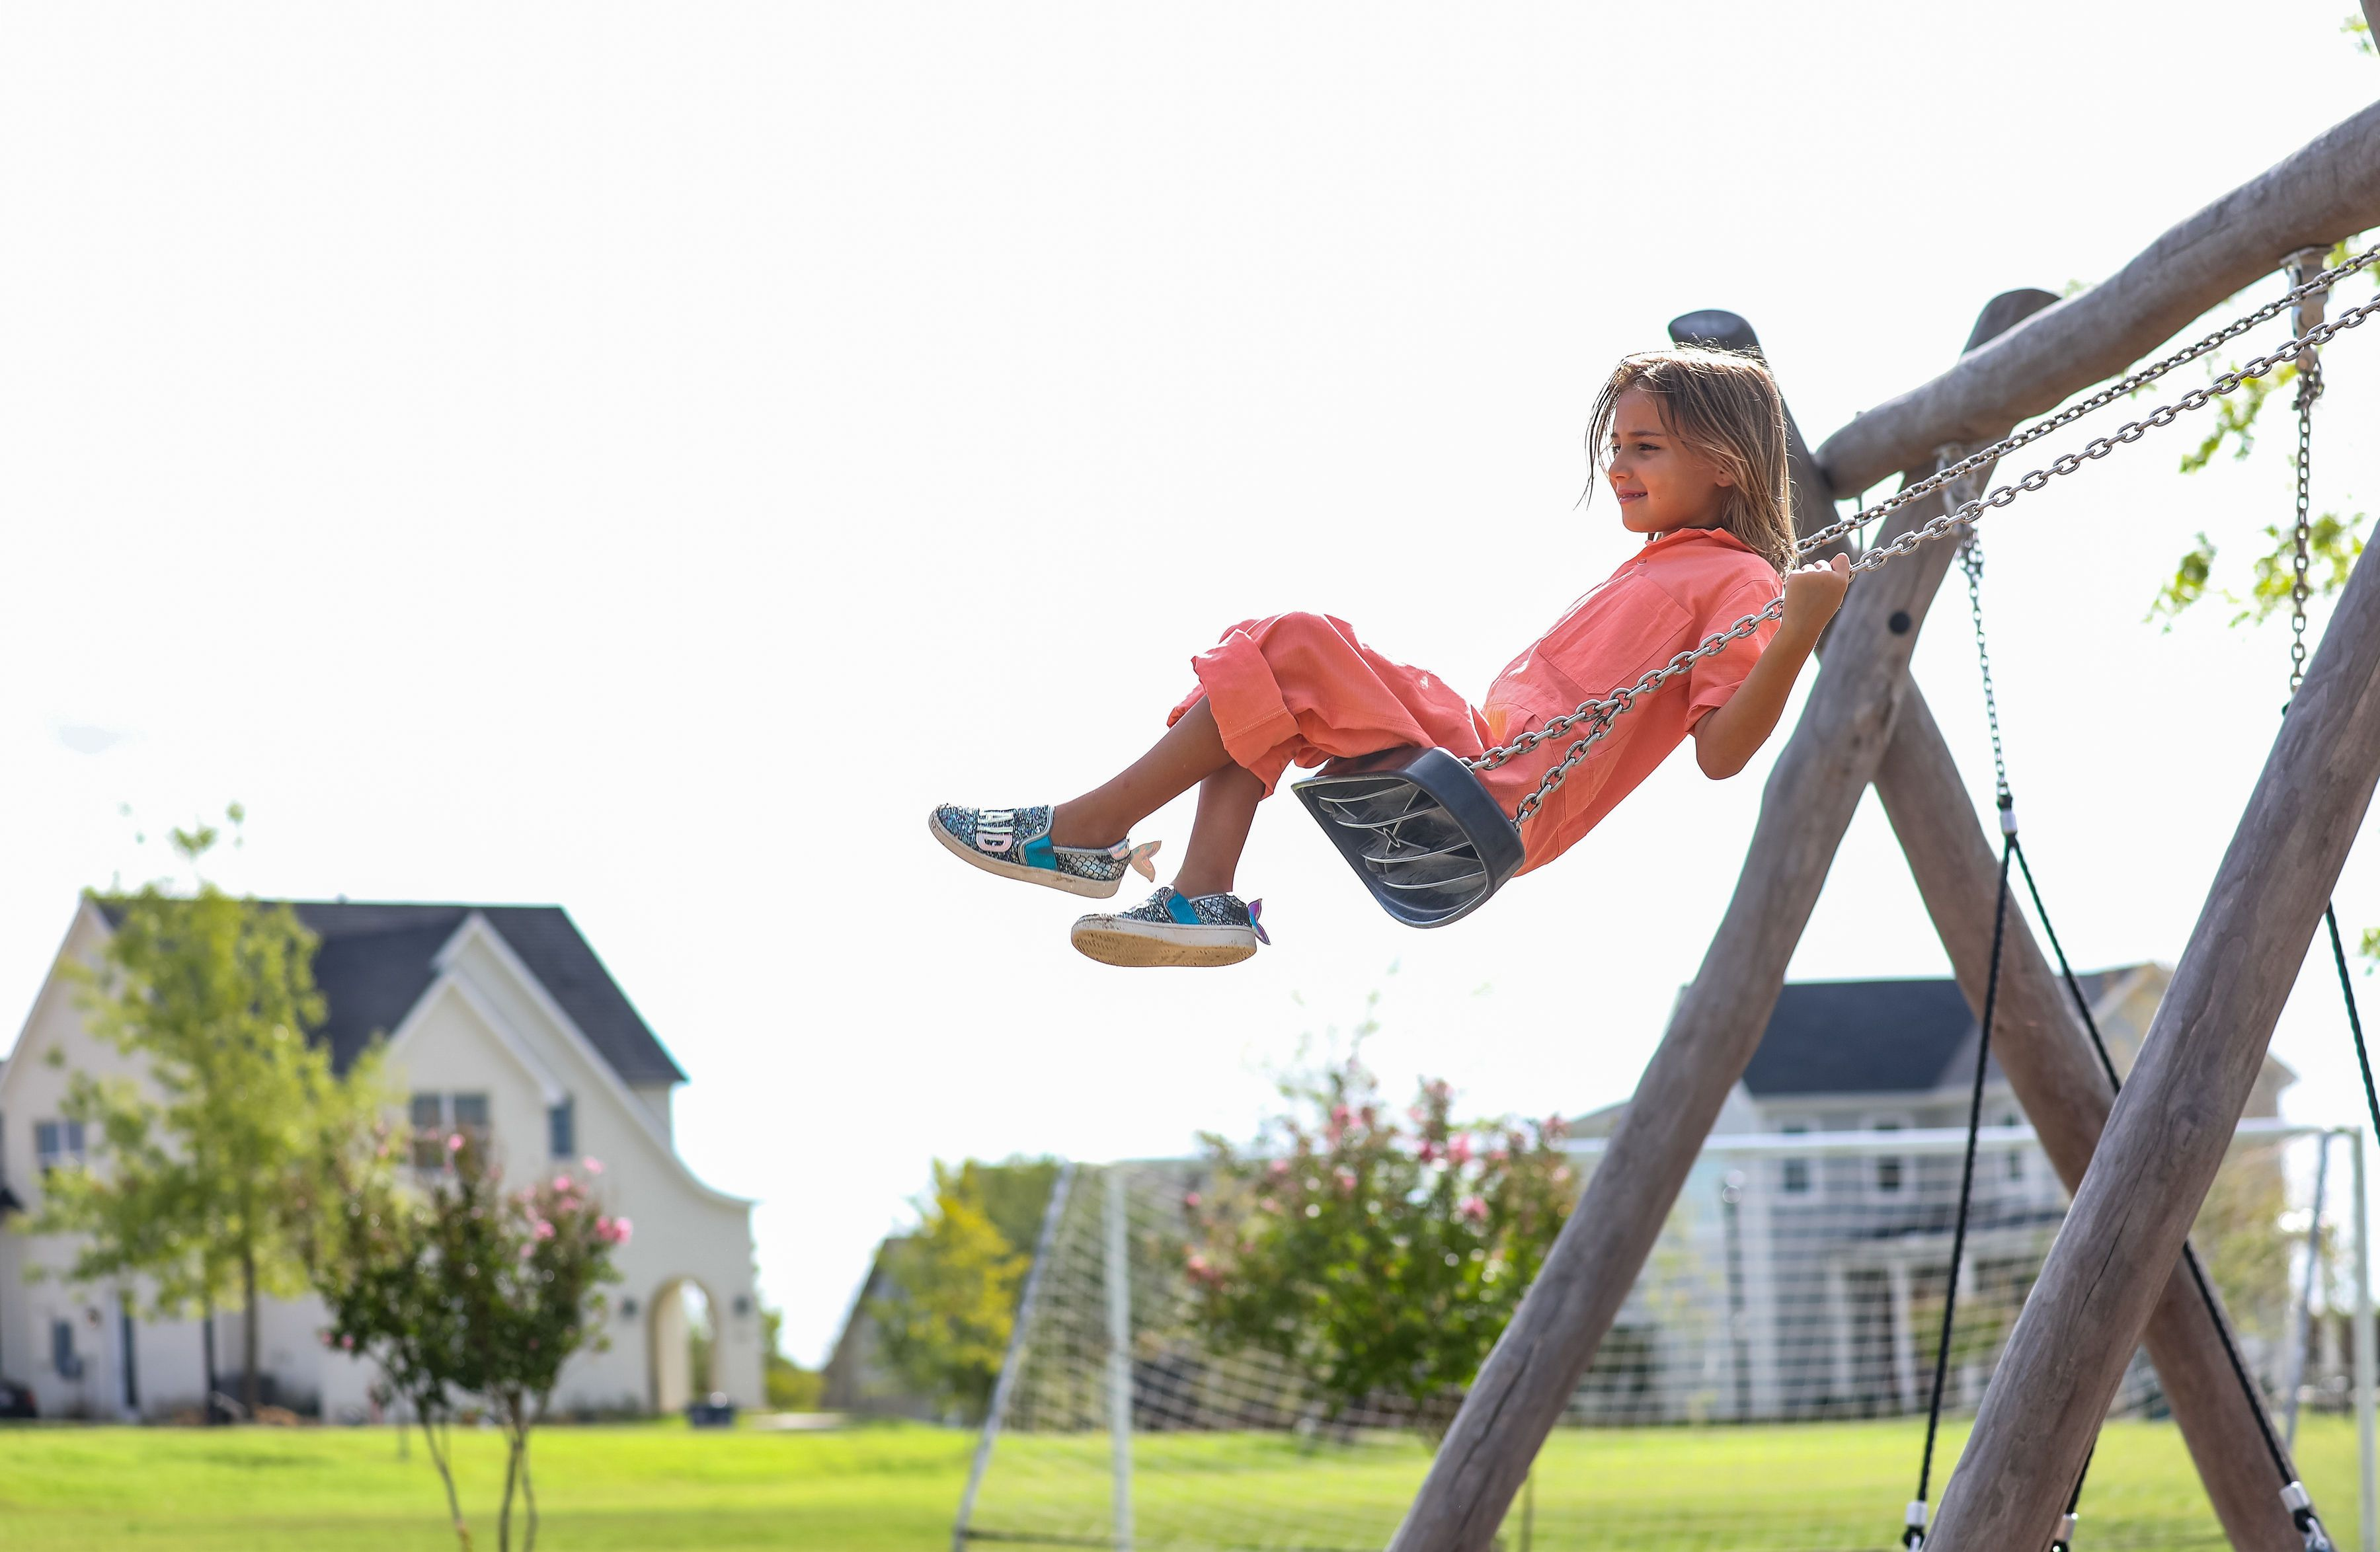 Crescent park at walsh in 2020 outdoor activities for